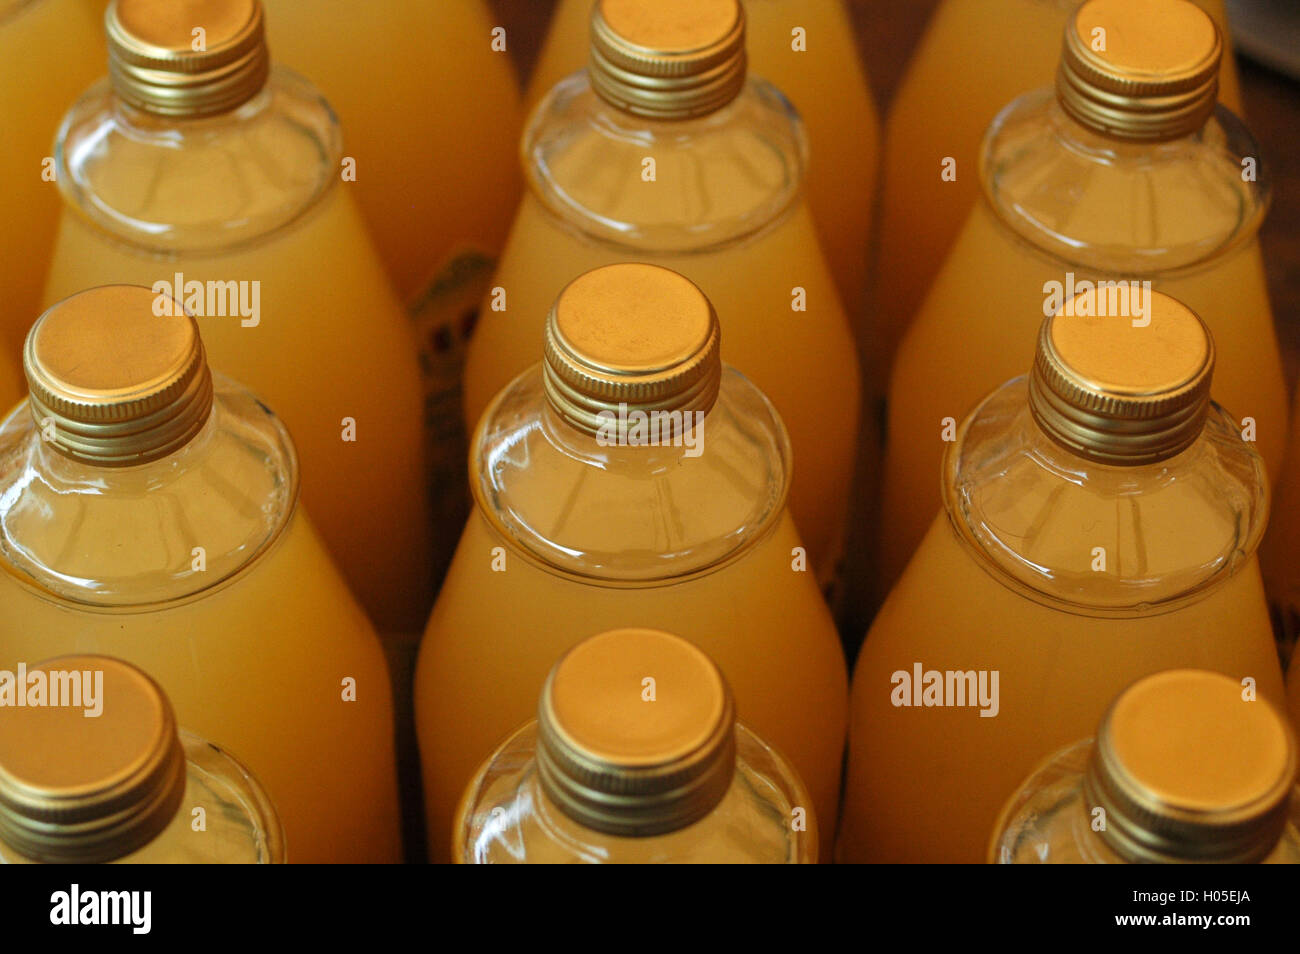 Transparent glass bottles with metal screw - Stock Image